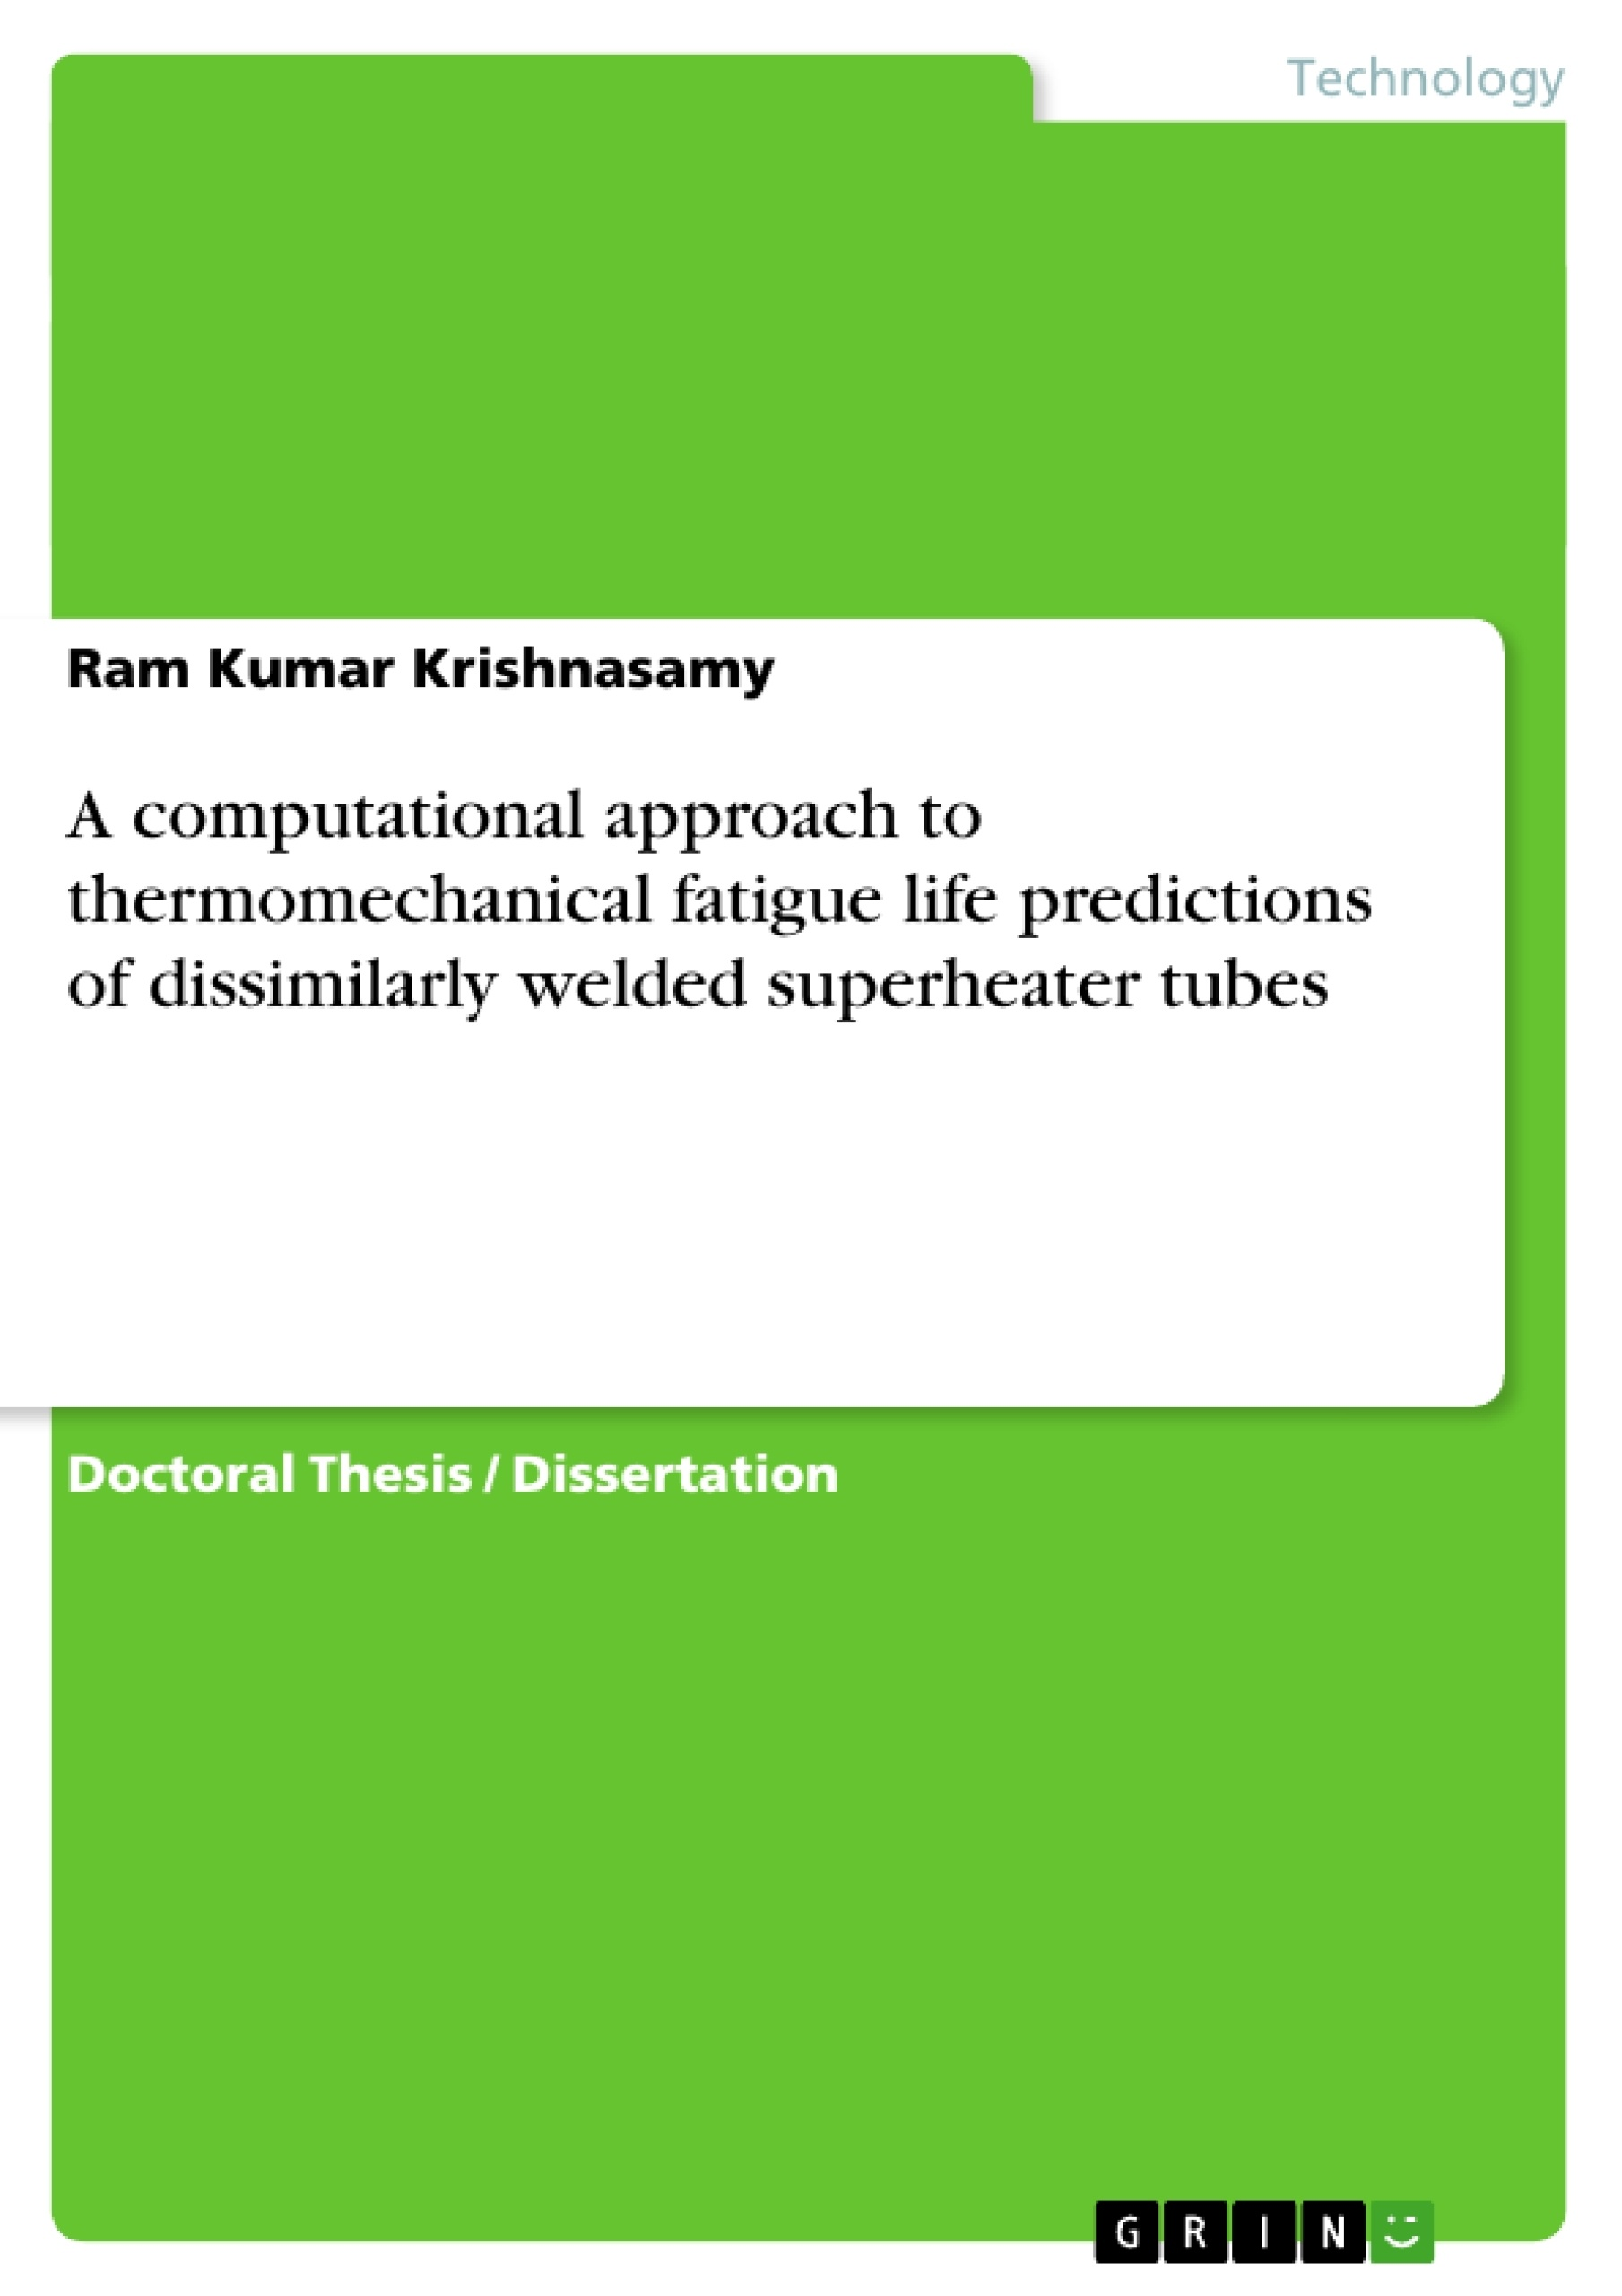 Title: A computational approach to thermomechanical fatigue life predictions of dissimilarly welded superheater tubes